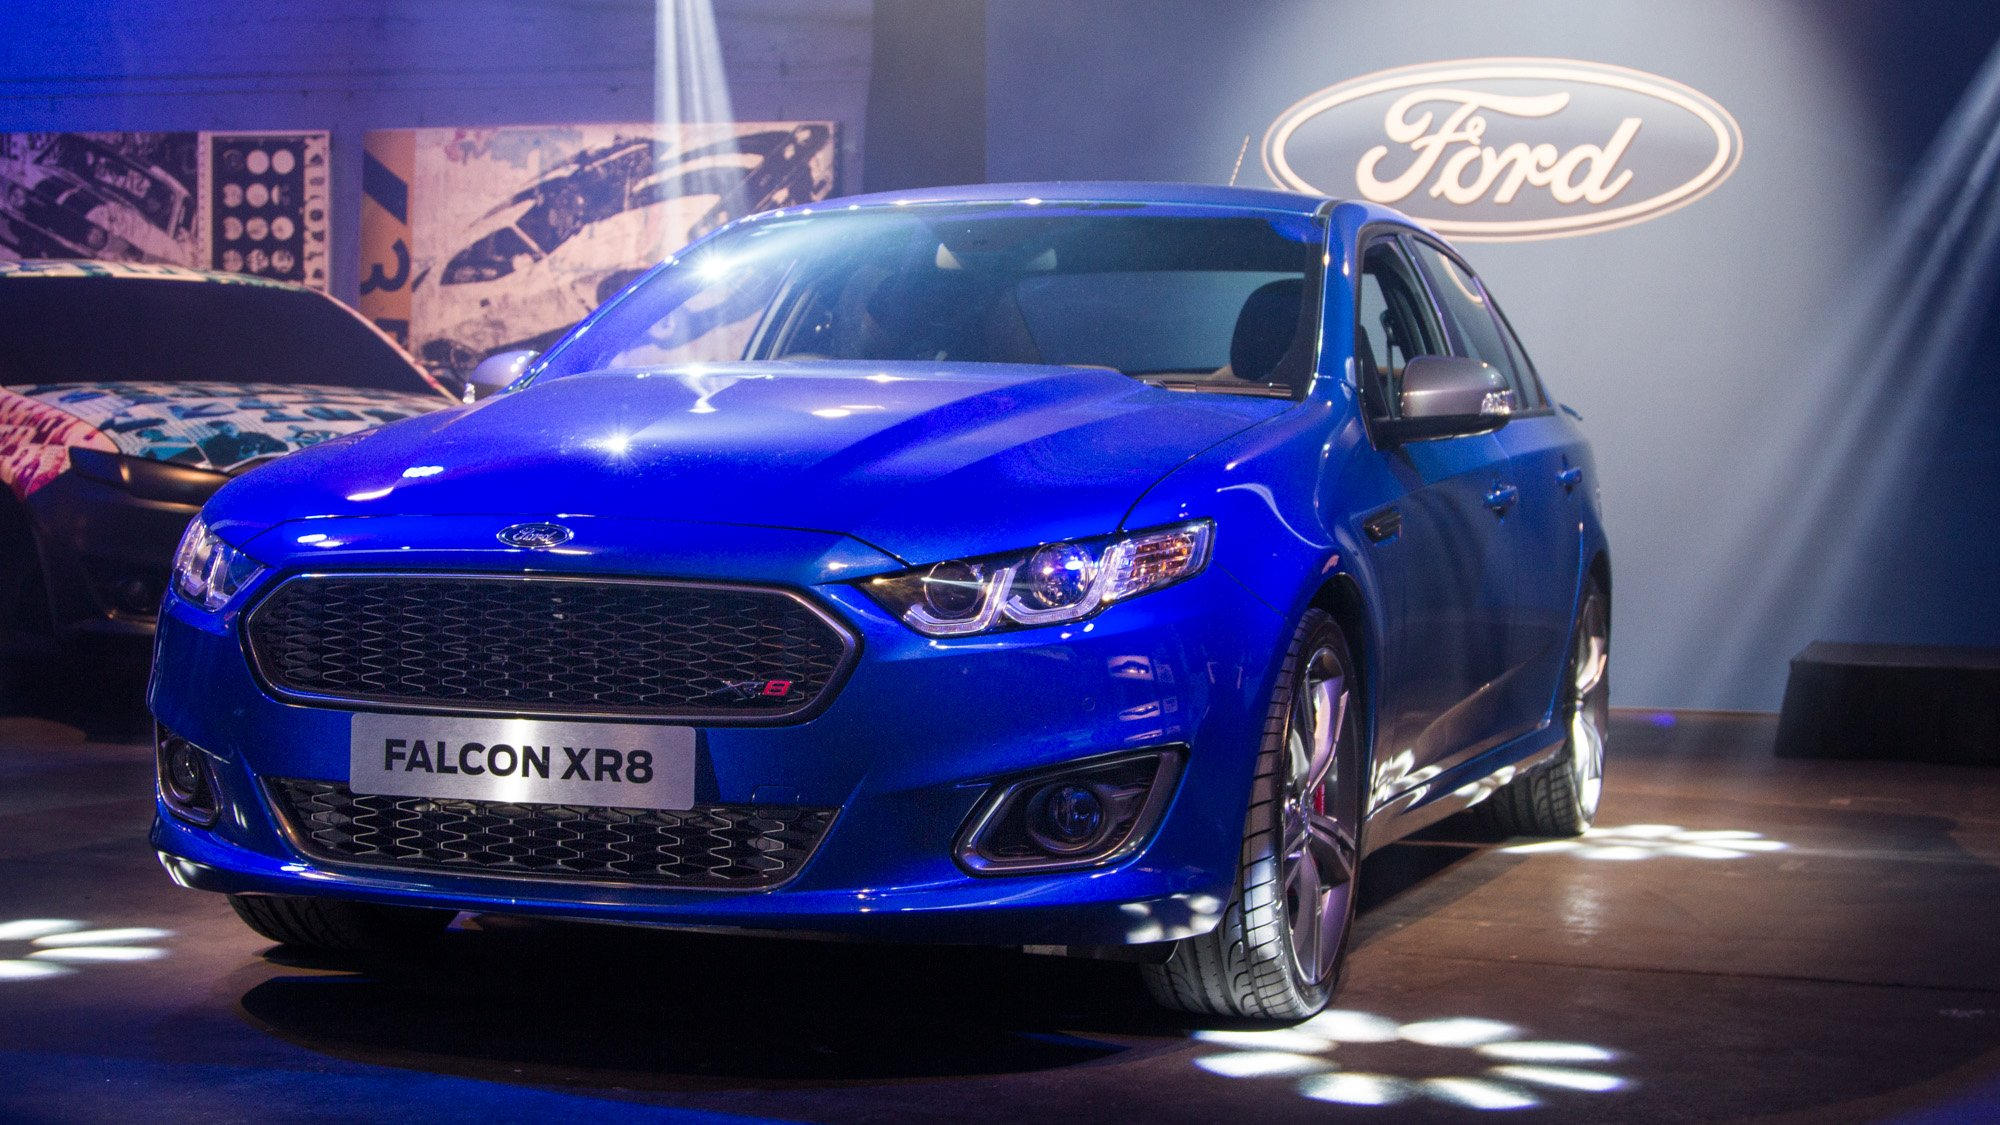 Ford Falcon XR8 unveiled in Melbourne - photos | CarAdvice